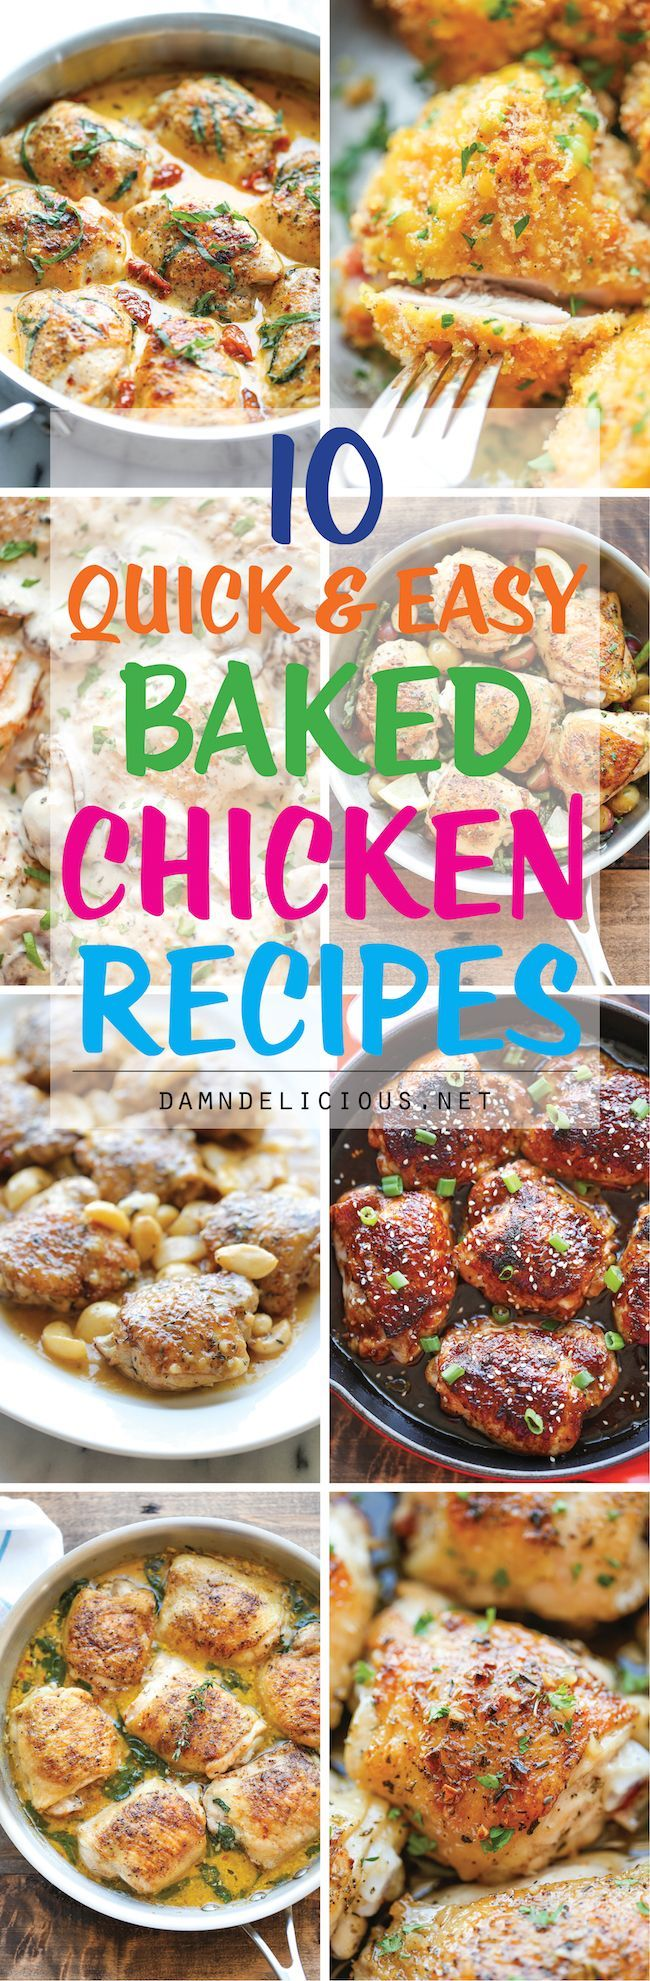 ever   try Skip Quick recipes headphones beatbox and Chicken chicken one actually believe fried is    Recipes instead  will these Easy the No the baked  Baked and chicken